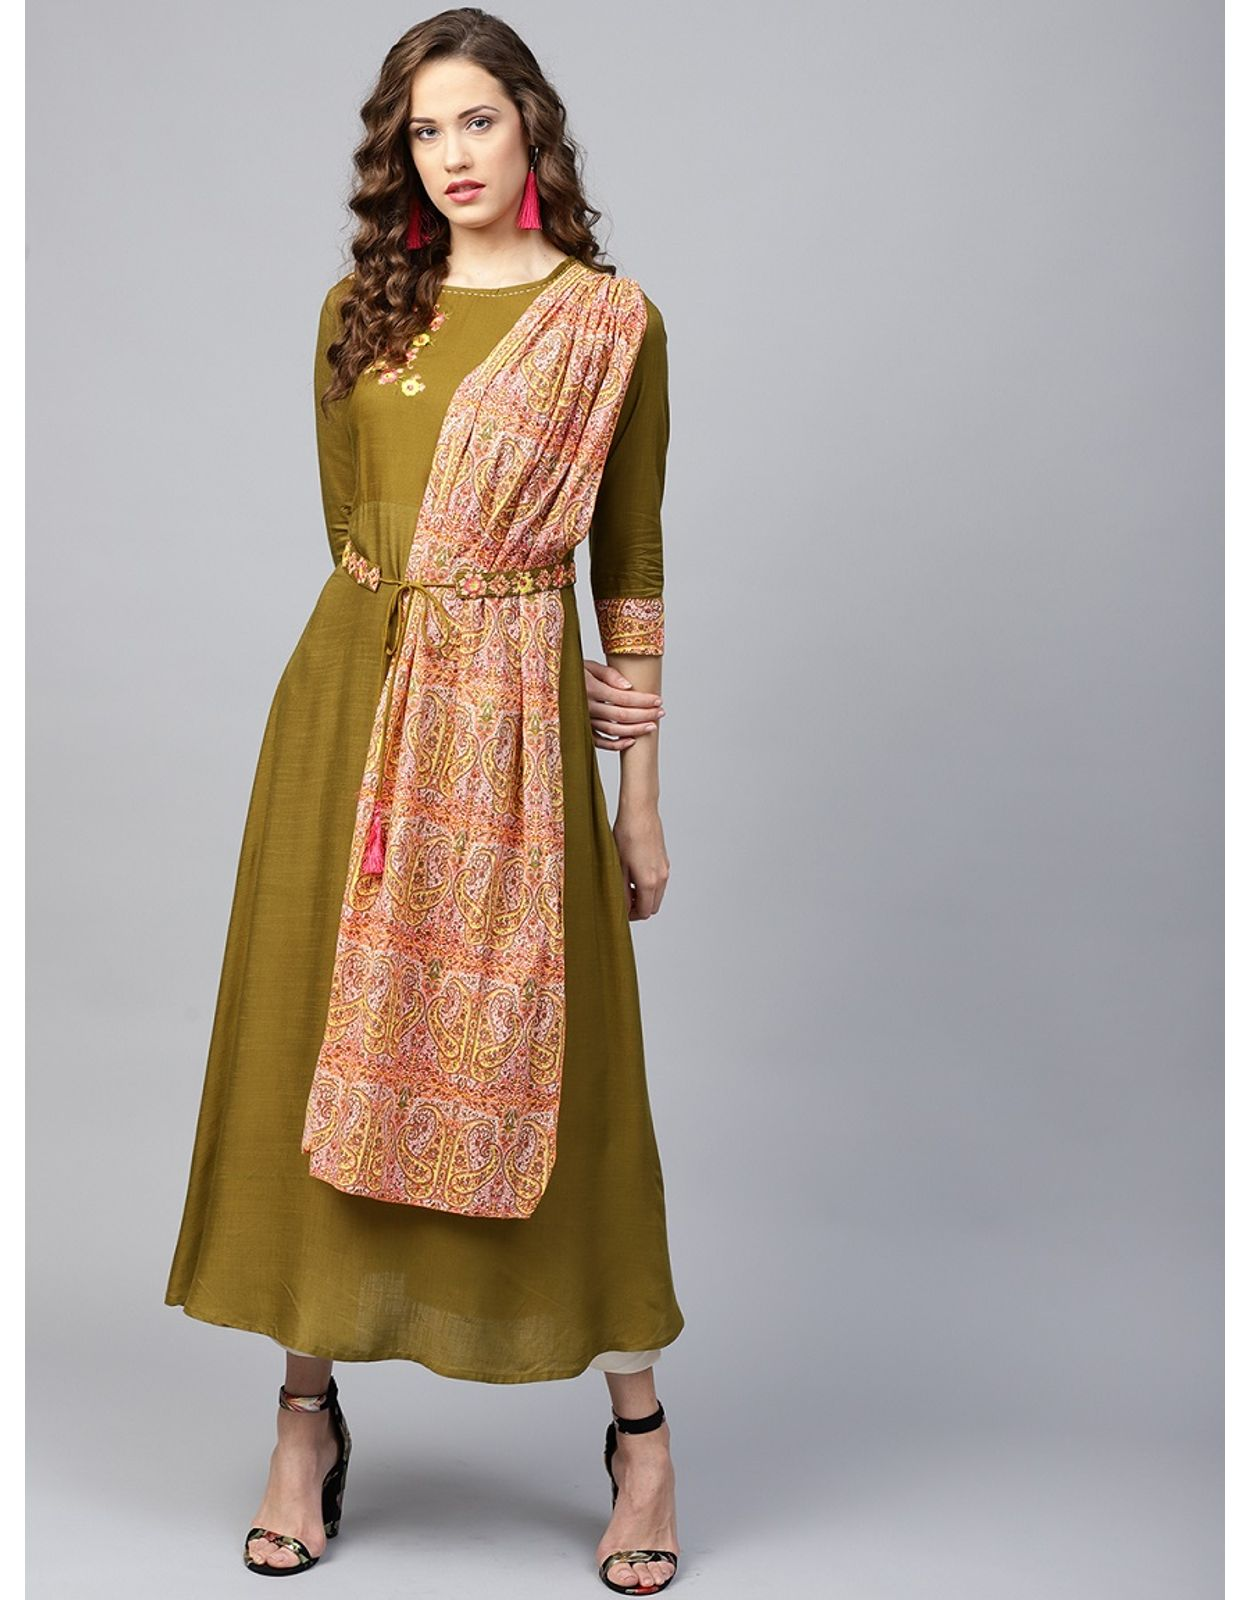 yufta women olive green solid a line kurta with attached dupatta